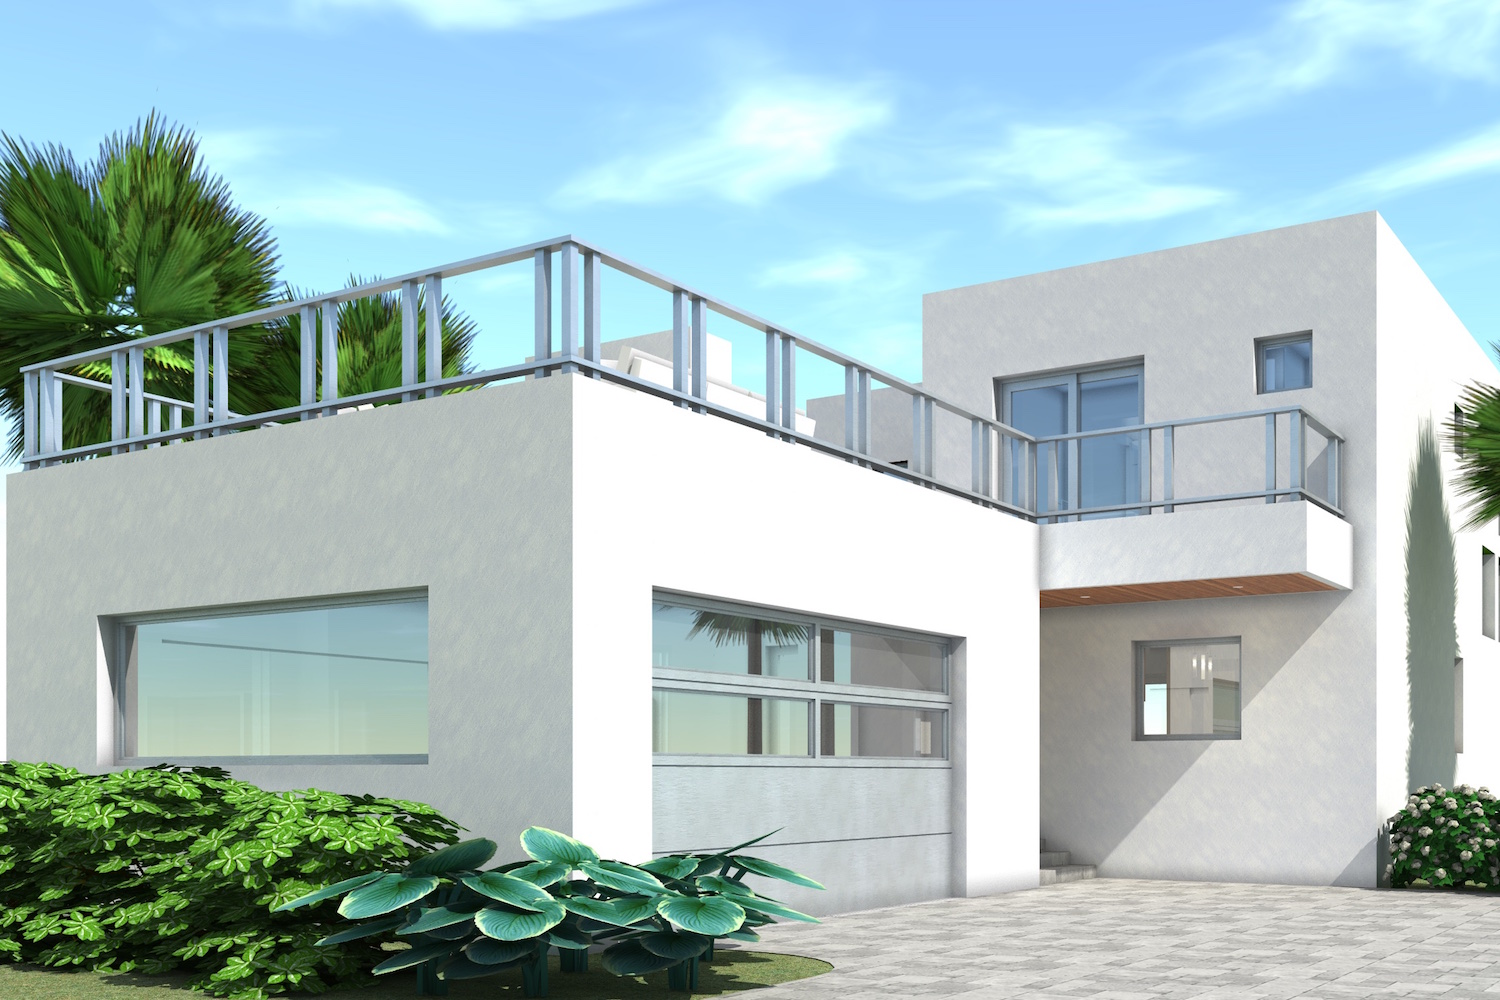 116 1122 · color rendering of modern home plan theplancollection house plan 116 1122